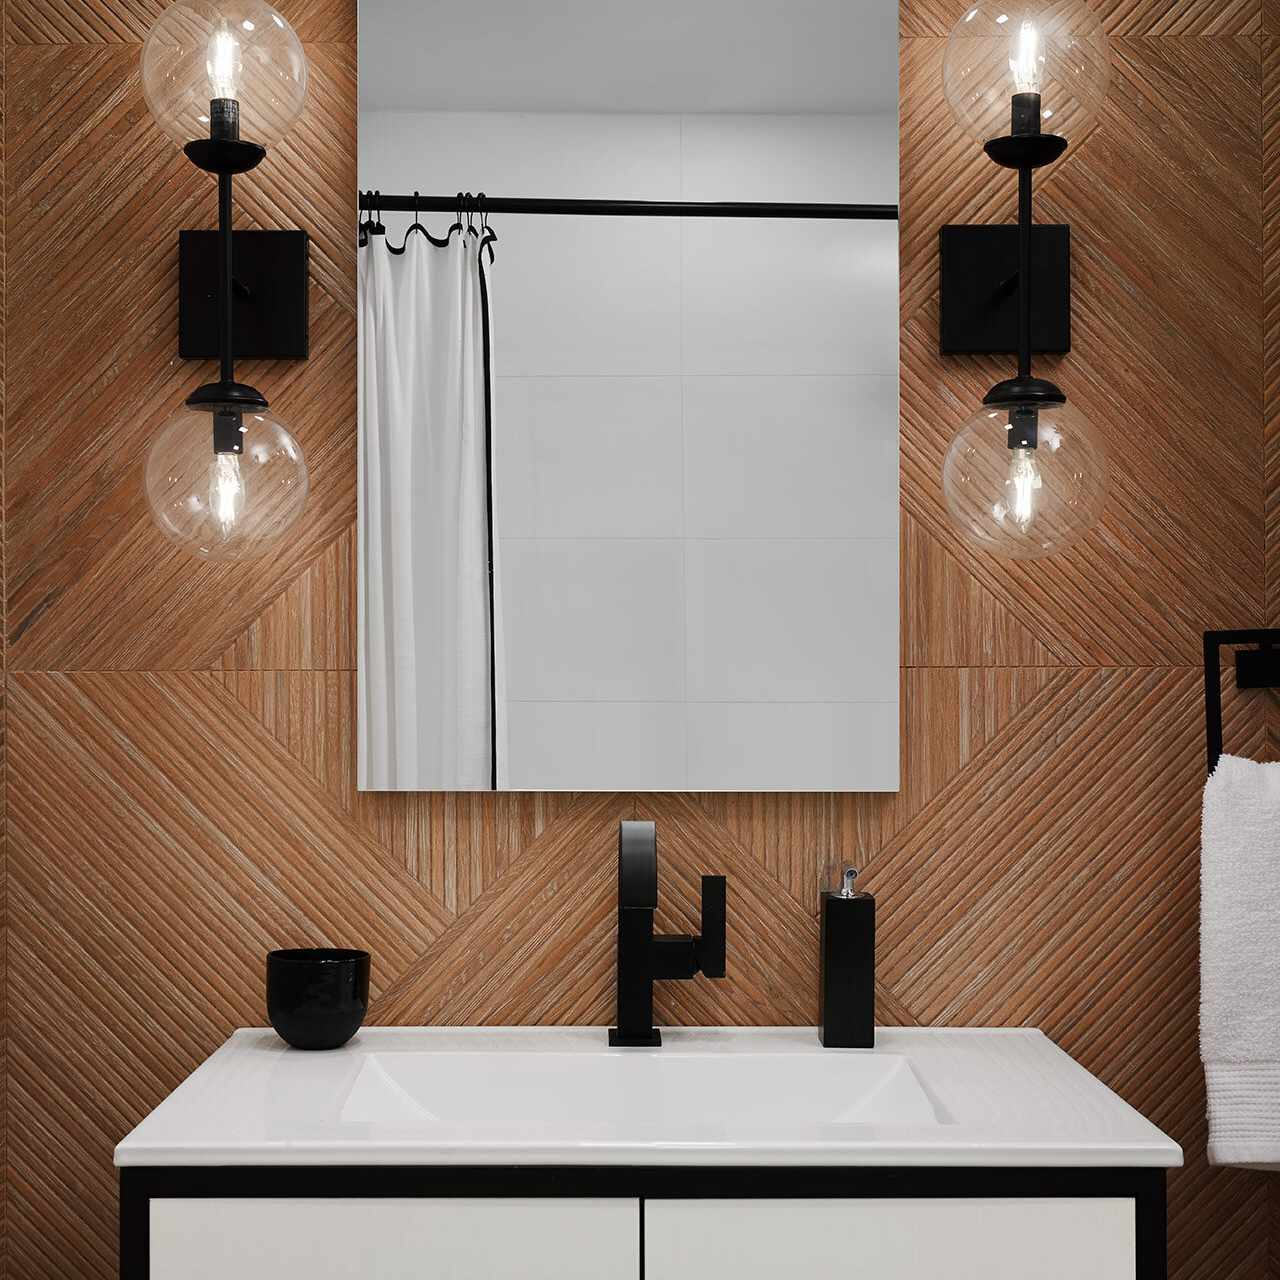 Bathroom with textural tile wall and white and black accents